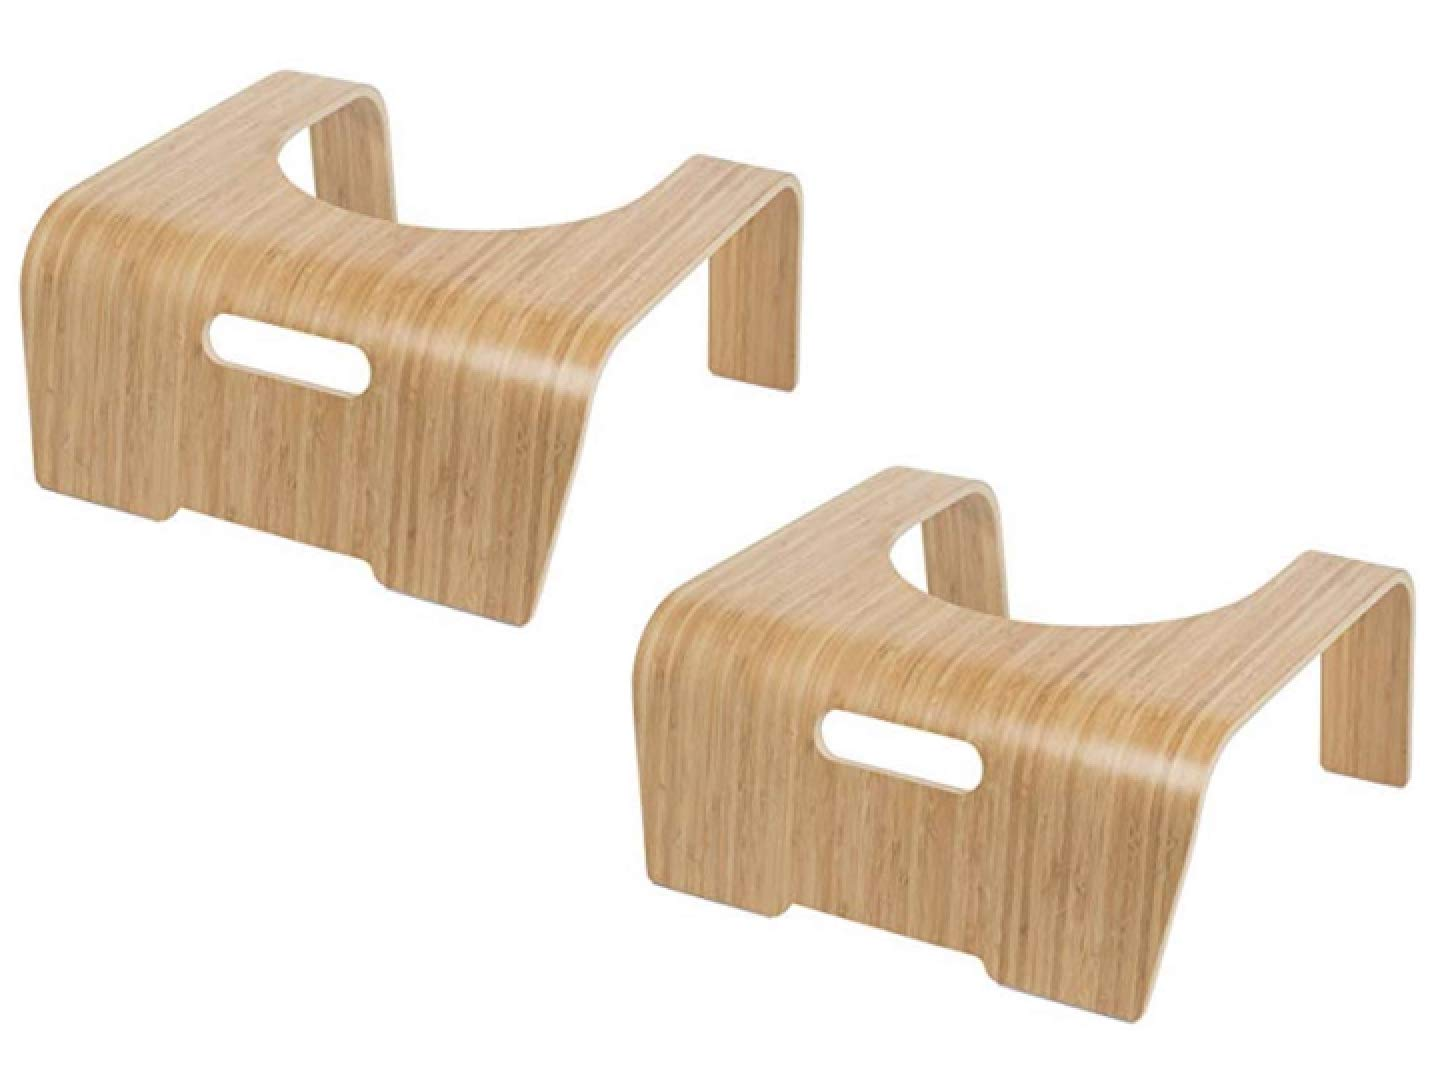 ToiletTree Products Original 100% Natural Bamboo Wood Bathroom Toilet Stool, 8.5 inch Height (2 Pack)